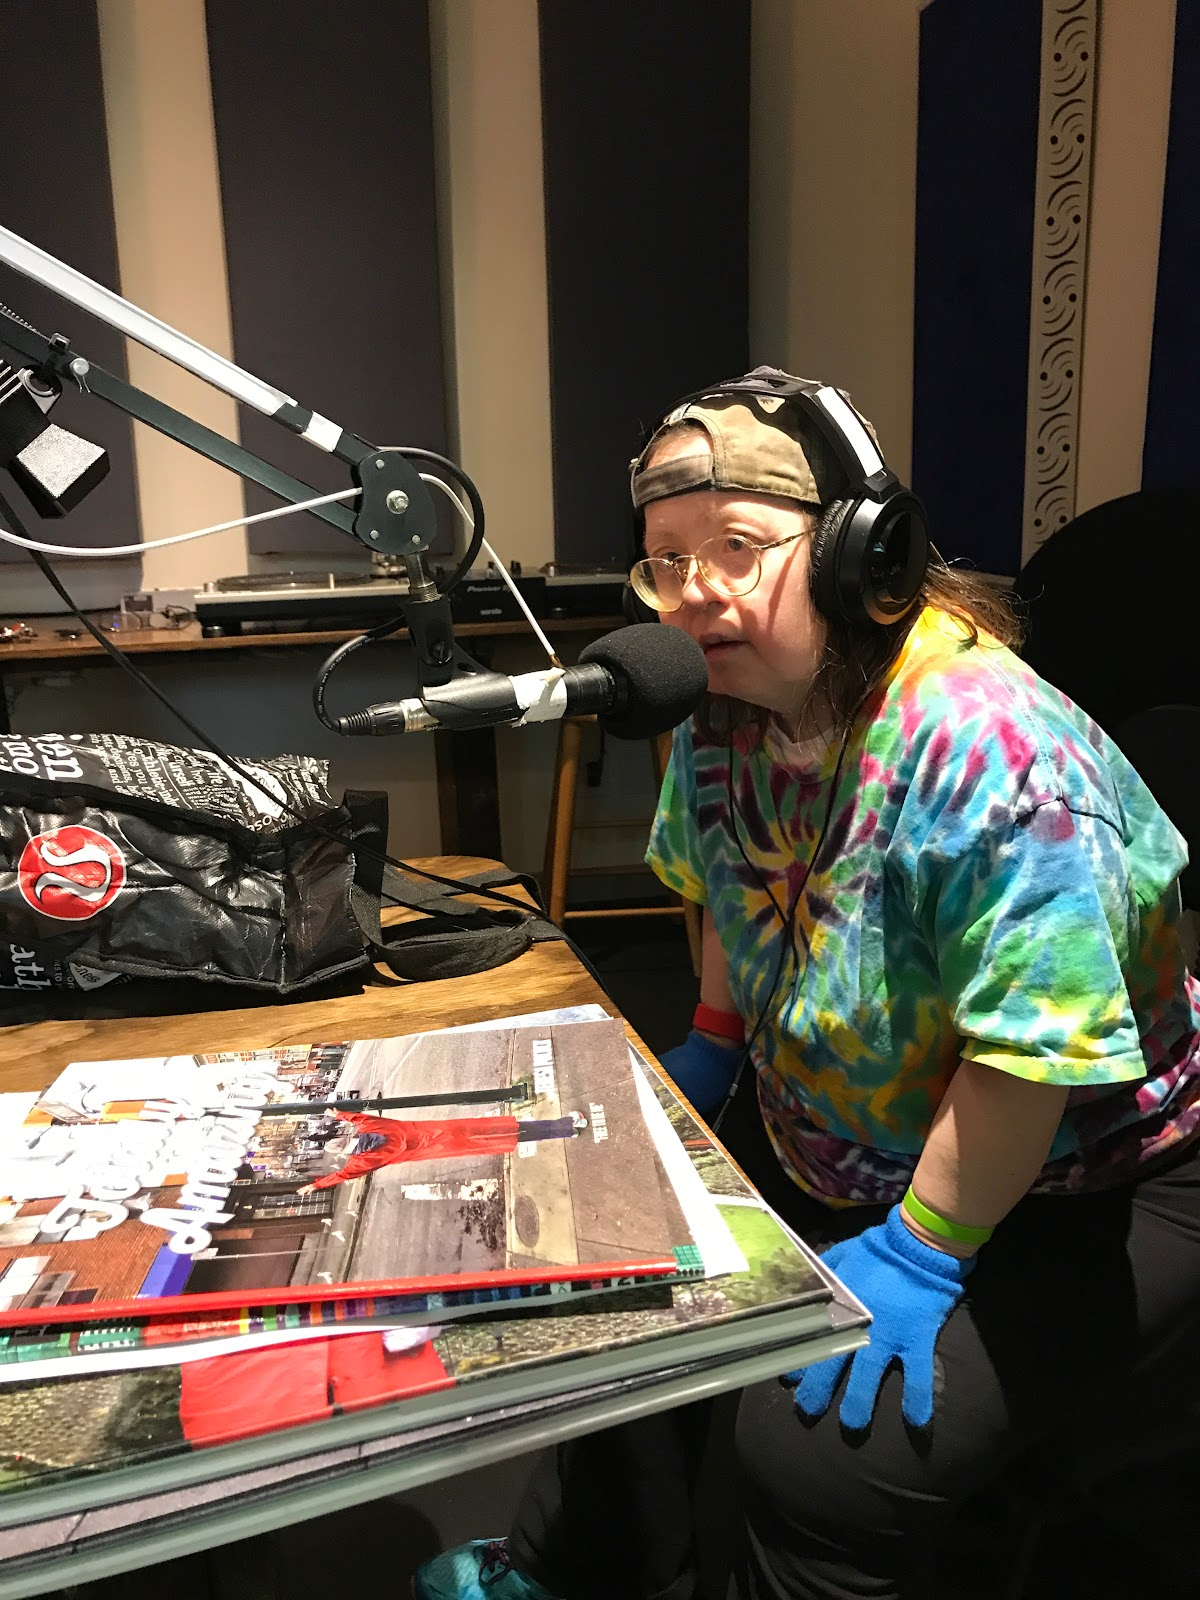 Teresa Pocock wears headphones and leans toward the microphone in a radio interview with Cathy Browne for CO-OP Radio on July 24, 2019. Photo by Franke James.